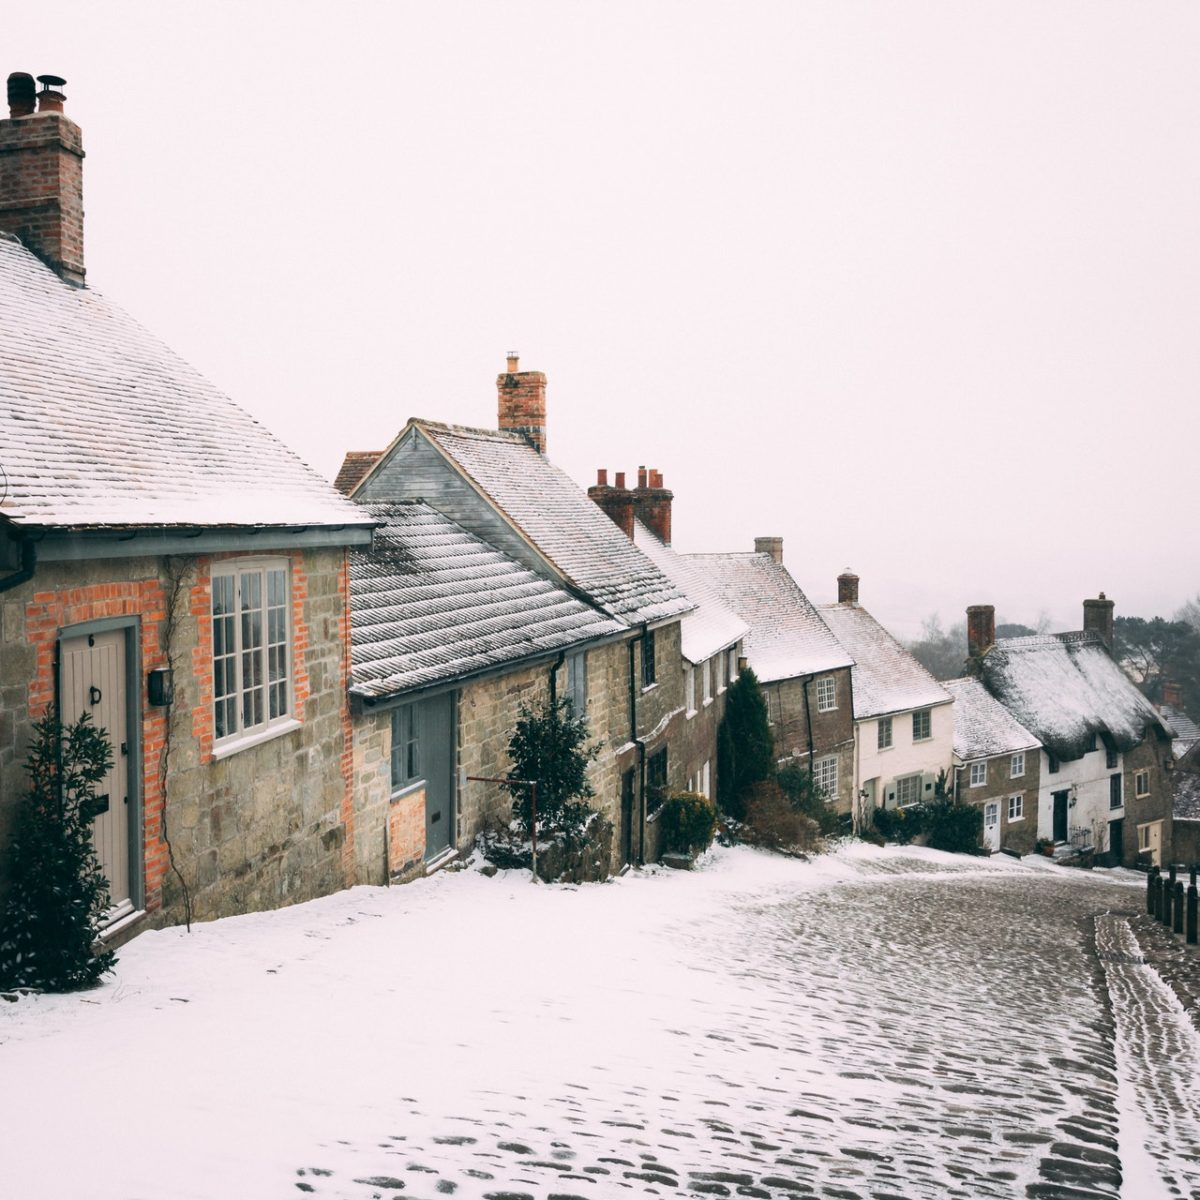 roofing maintenance during winter | Robinson Roofing